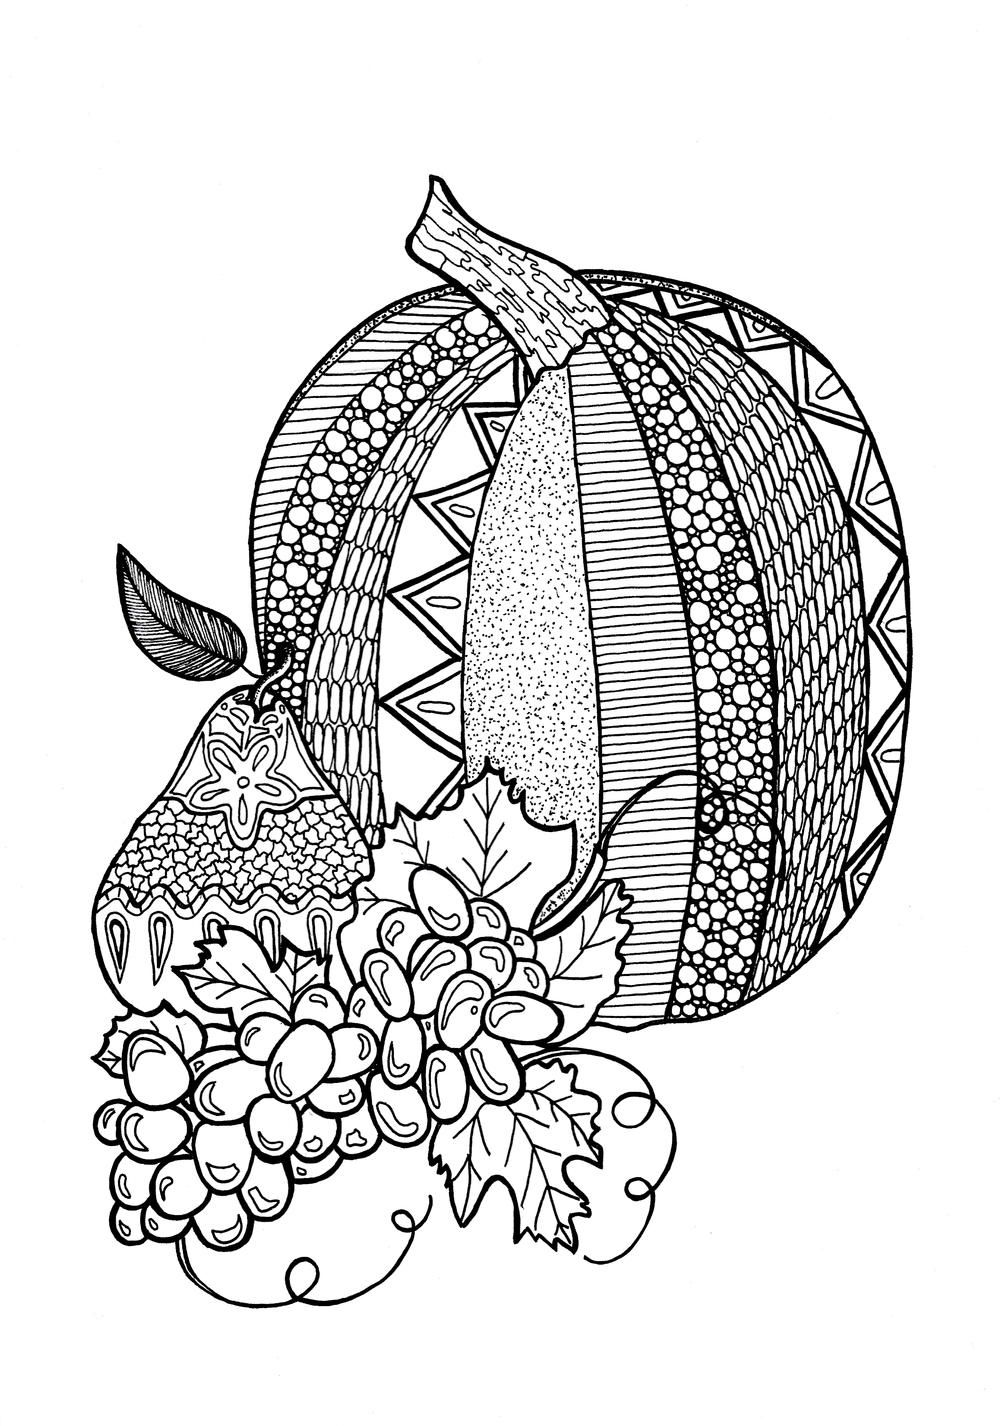 Textured pumpkin adult coloring page adult coloring thanksgiving